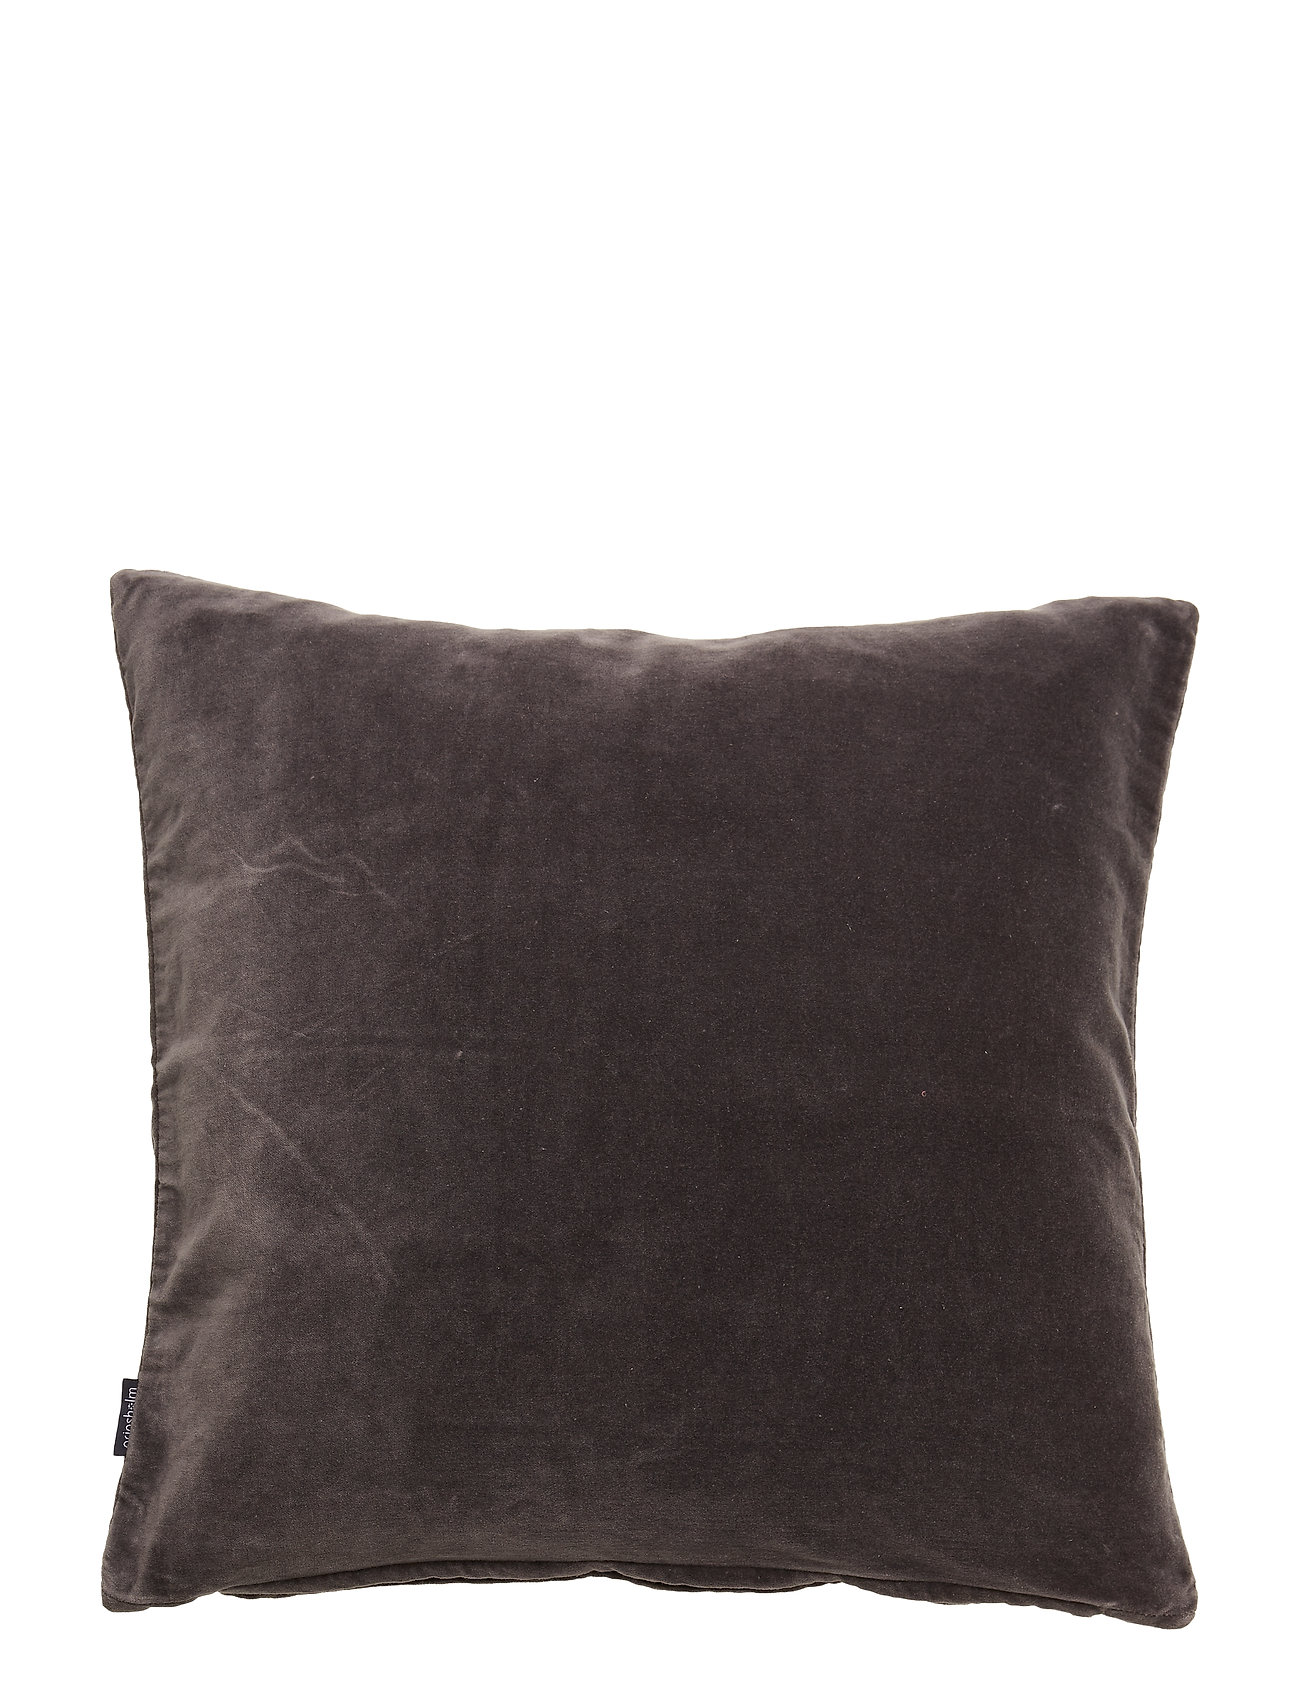 Gripsholm CUSHION COVER AVA GOTS - ANTHRACITE